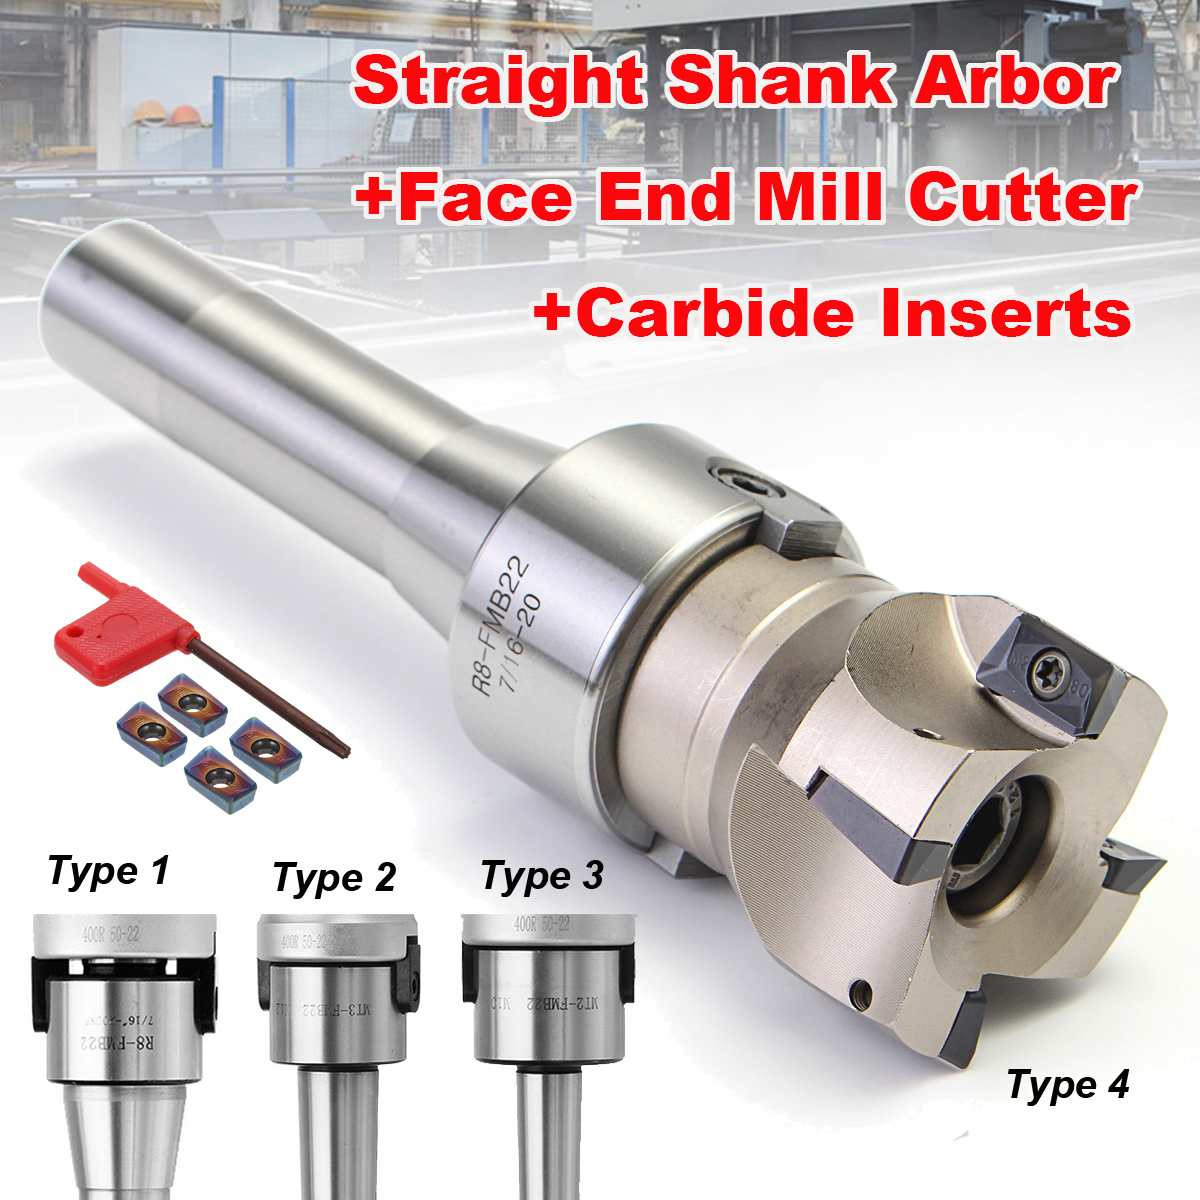 90 Degree R8 FMB22/MT2/MT3 Straight Shank Arbor+Face End Mill Cutter+4pcs APMT1604 Carbide Inserts/Blue-Nano Insert Turning Tool